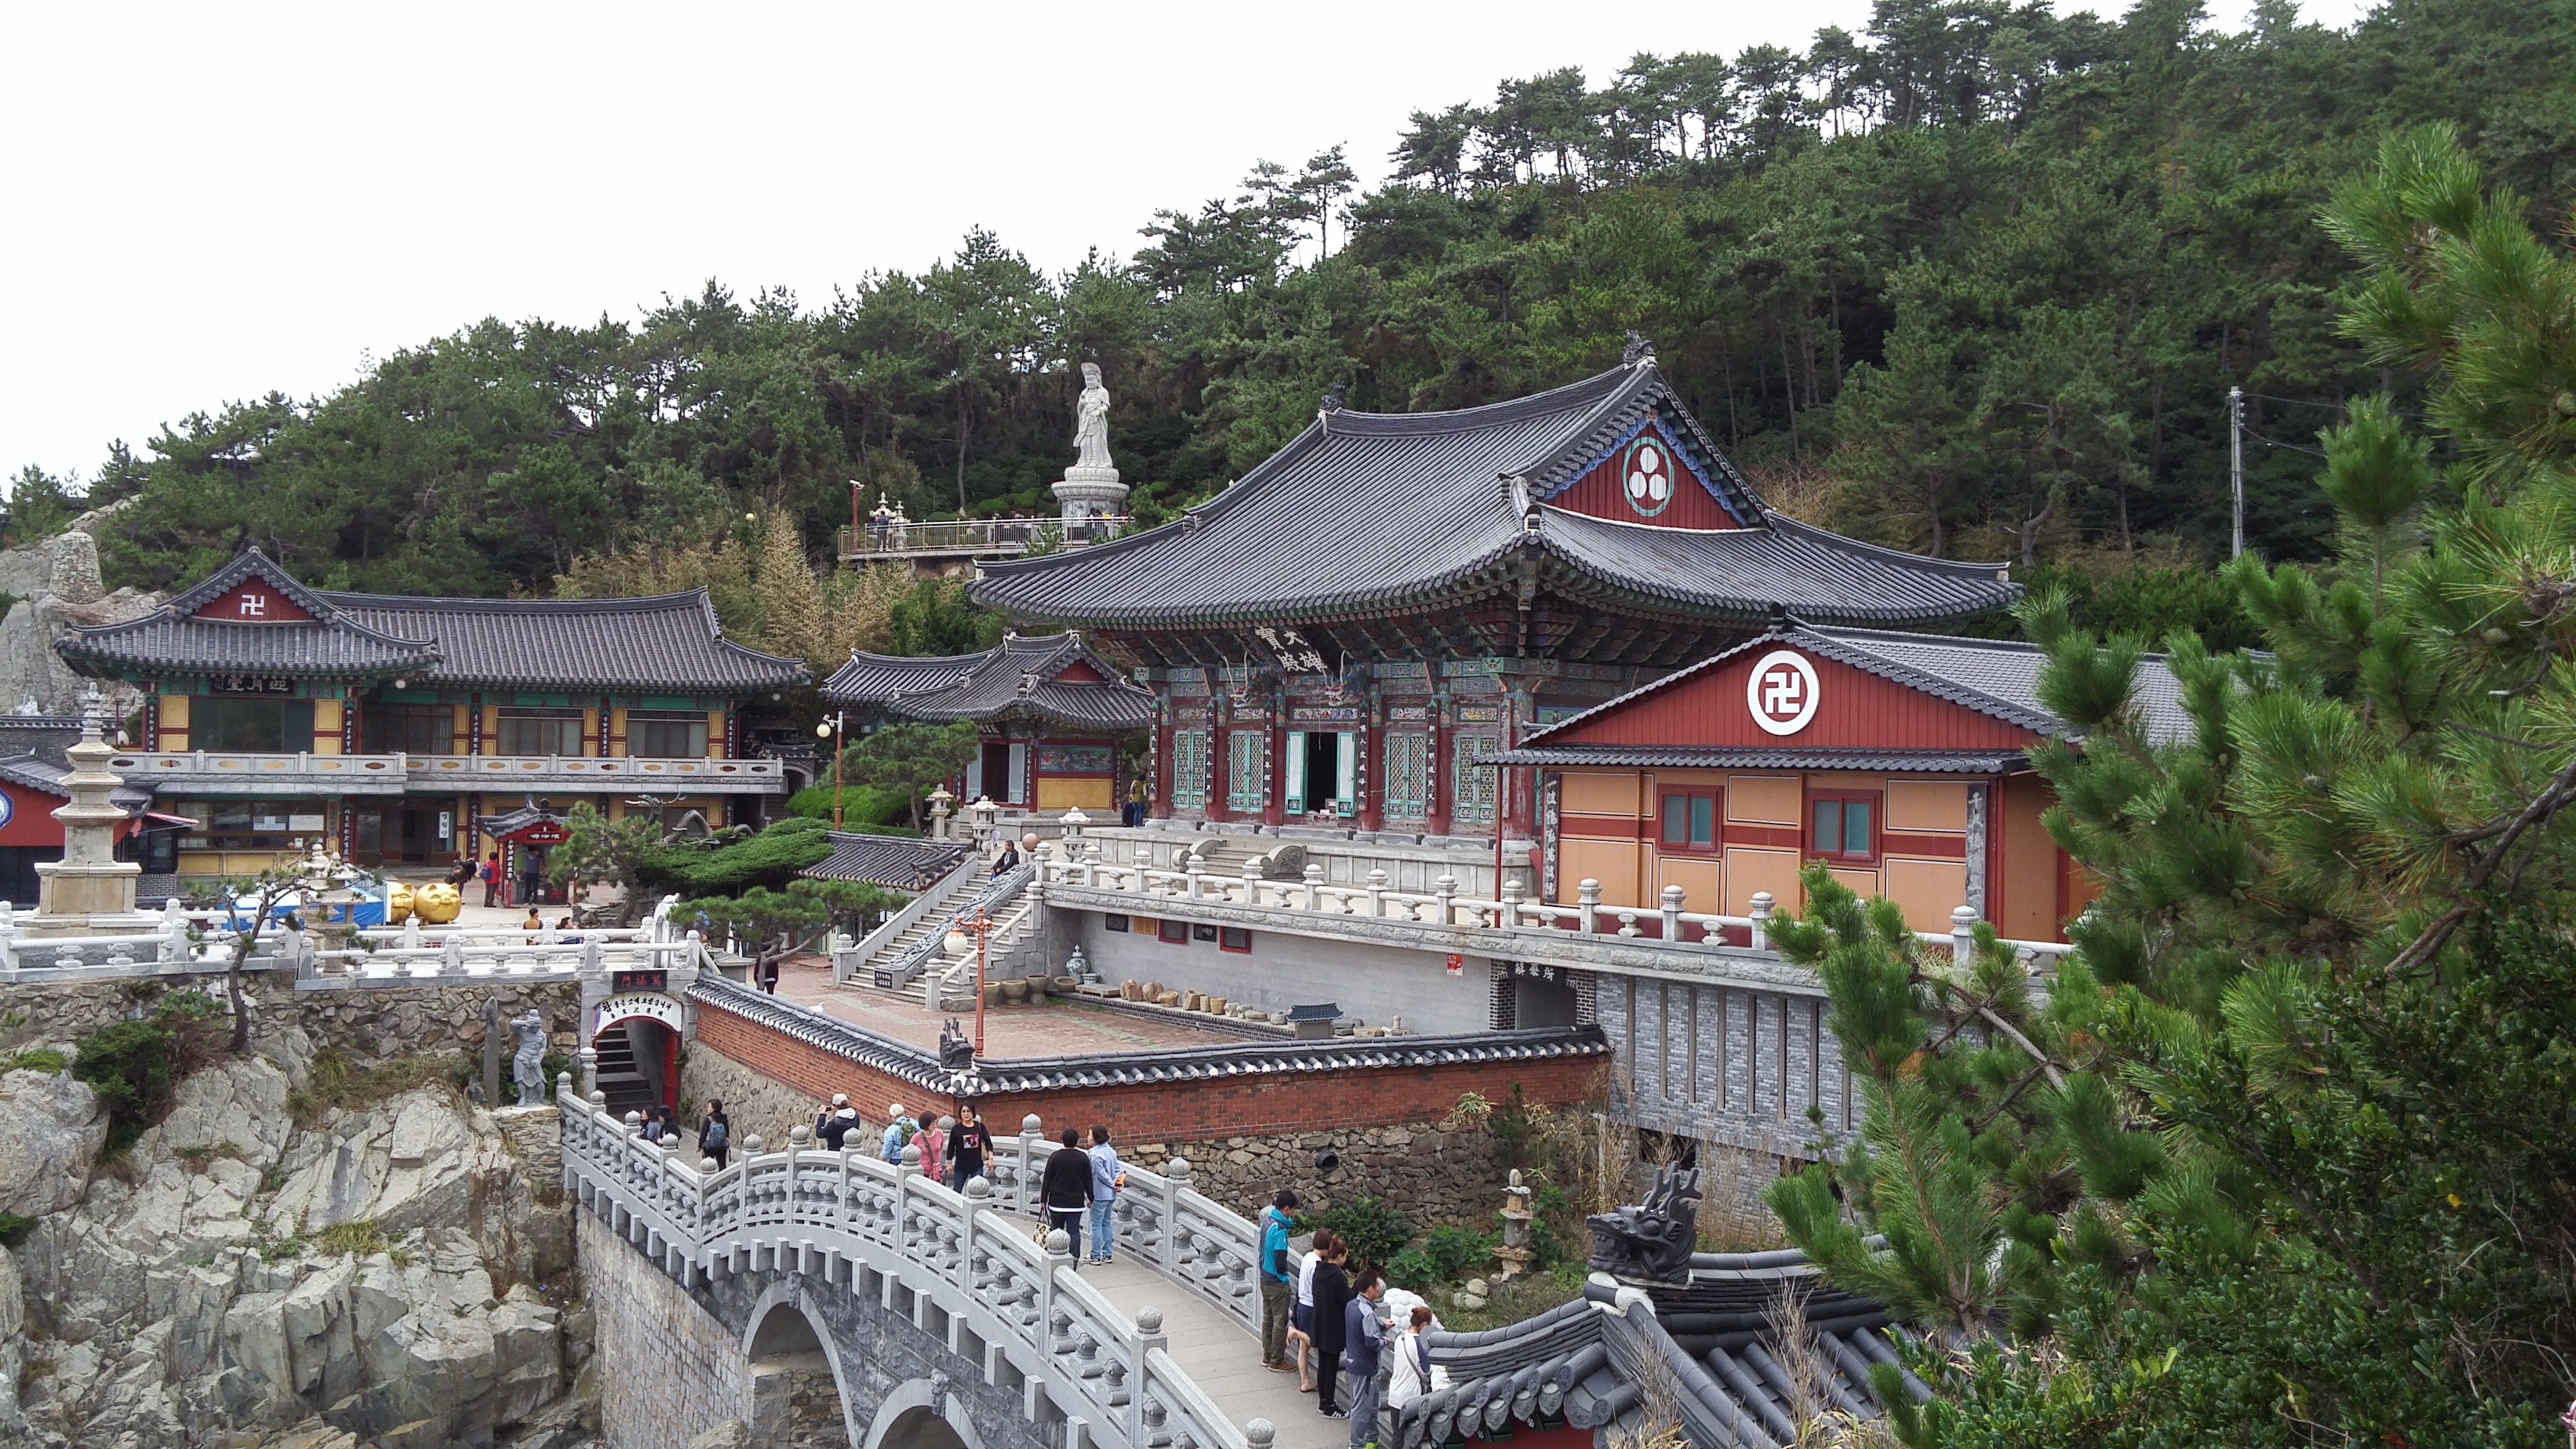 Haedong Yonggungsa Temple is one of the famous tourist attractions in South Korea with tons of monthly visitors from other countries.